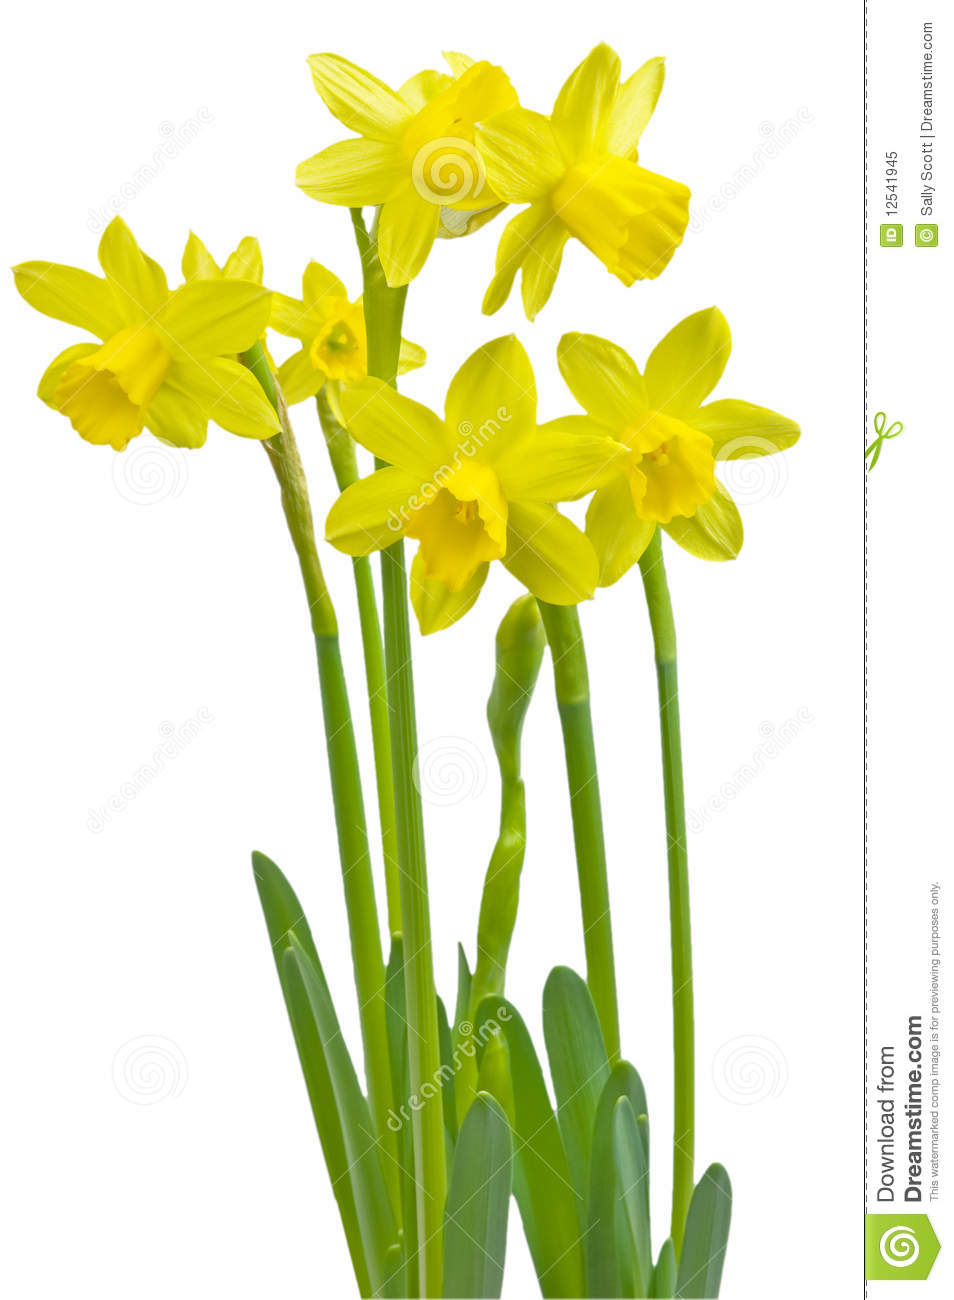 Miniature Daffodils Royalty Free Stock Photo - Image: 12541945